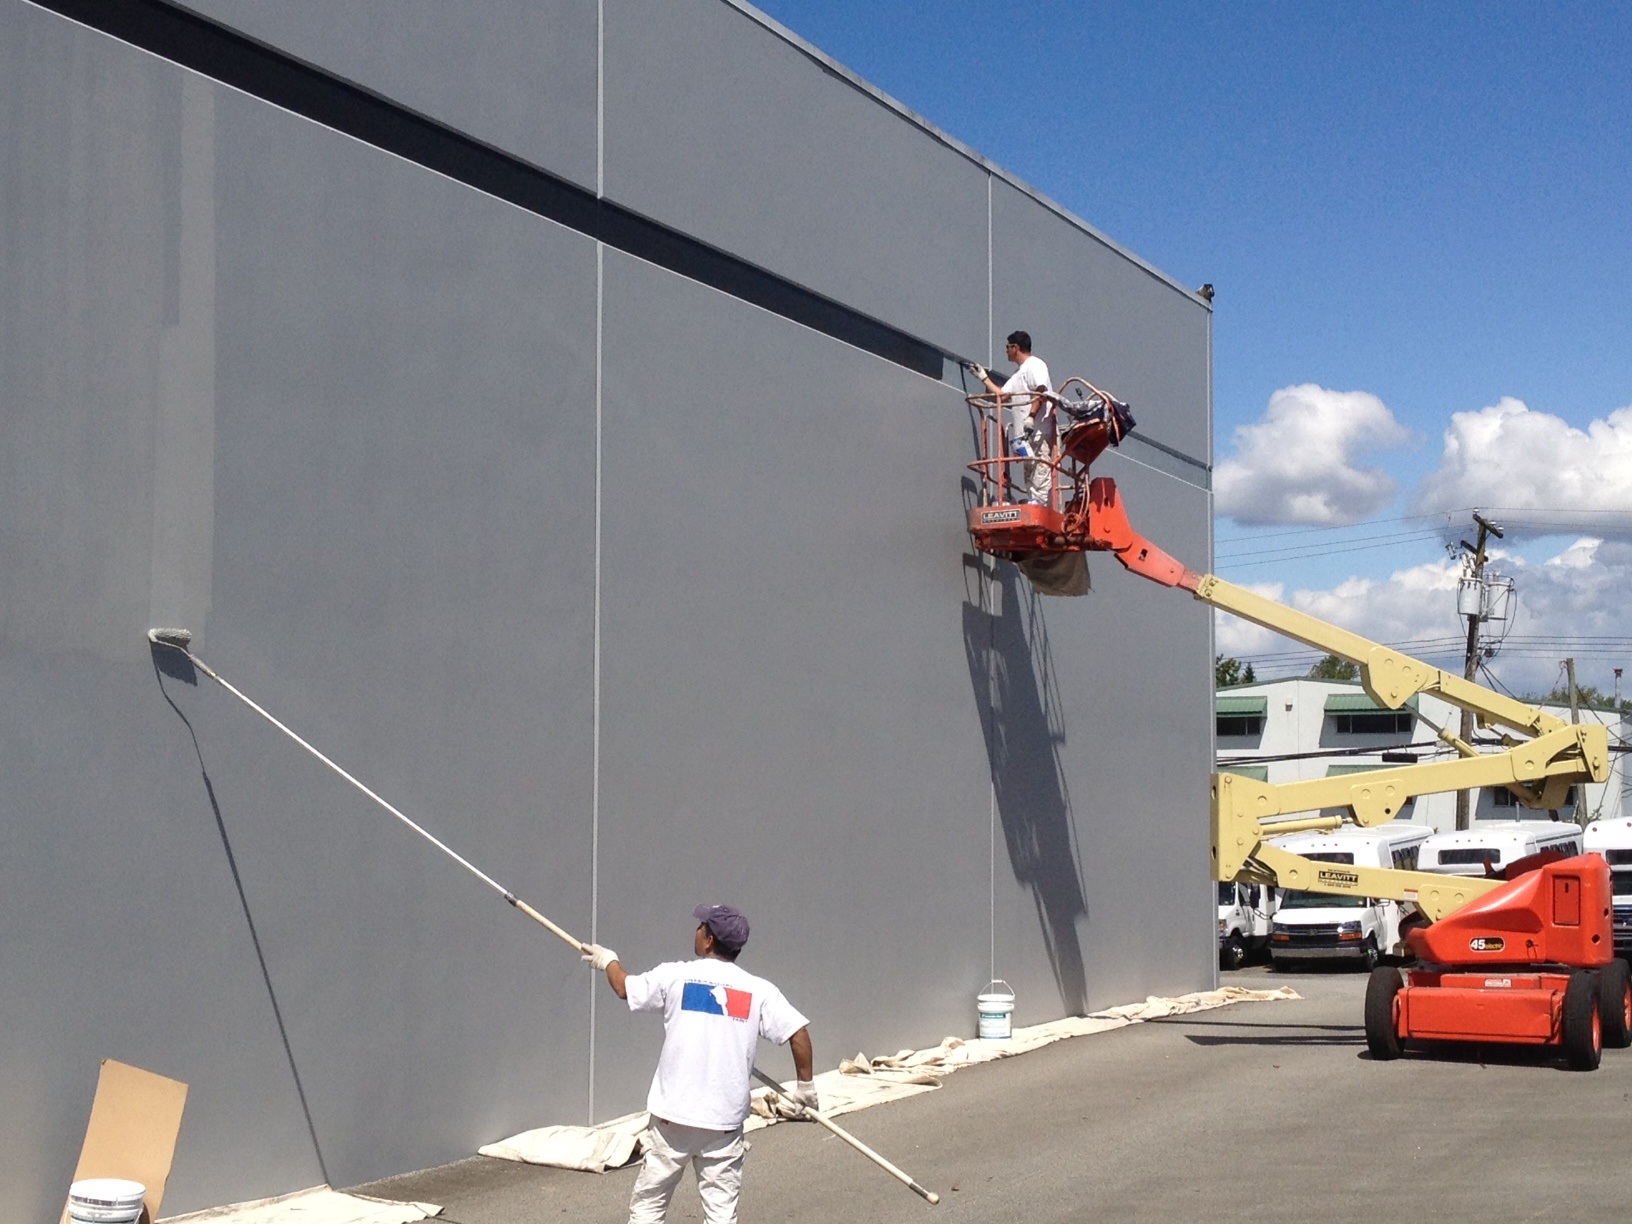 Commercial Painters Noank CT